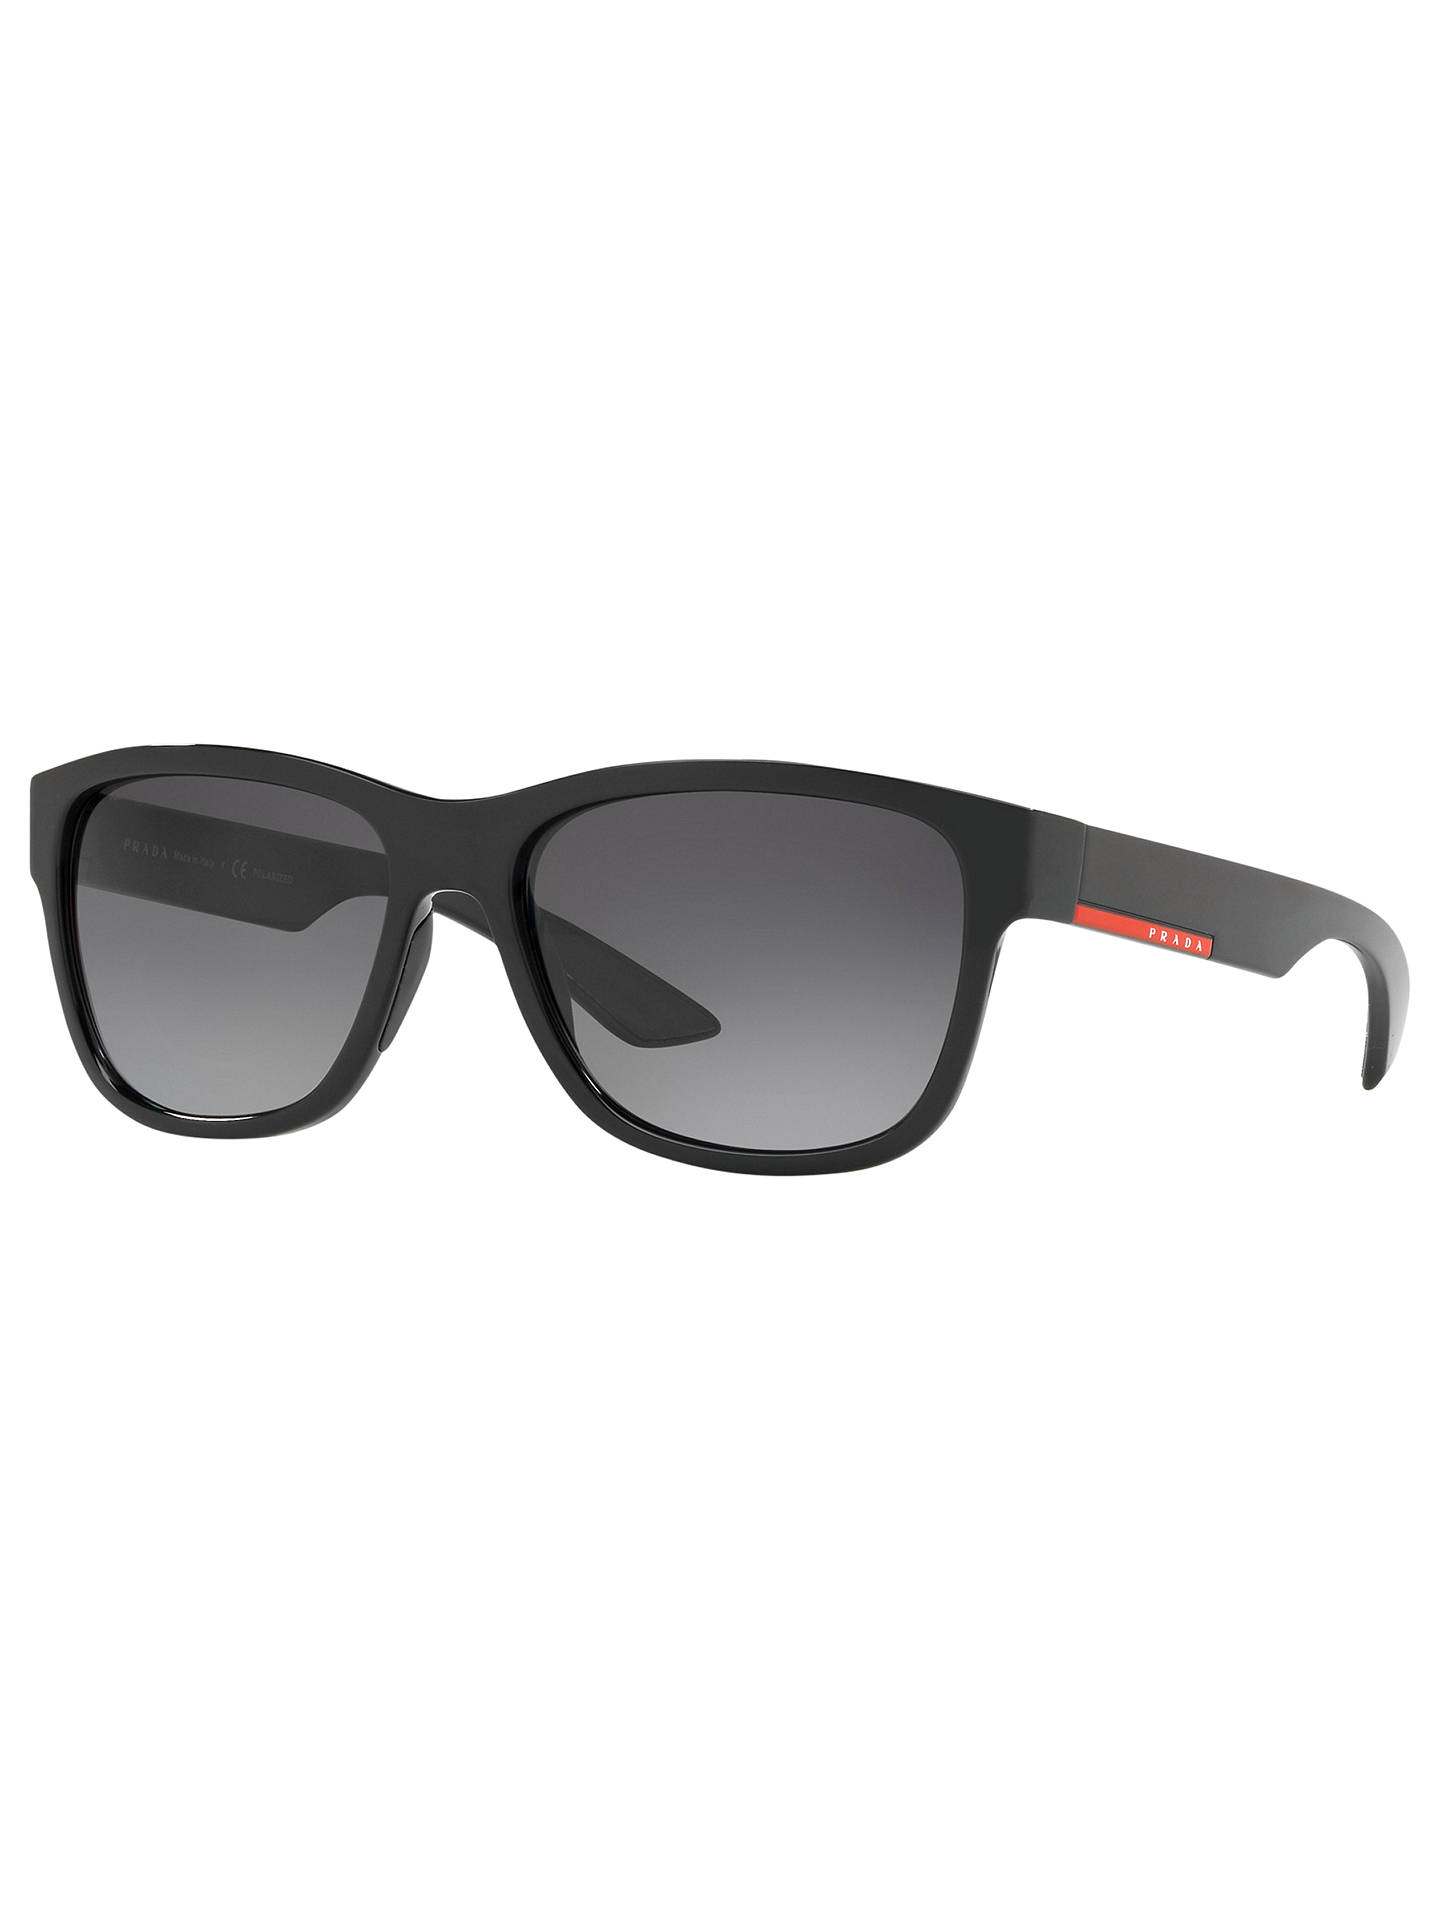 e69e691d4052 Buy Prada PS03QS Men s Rectangular Sunglasses